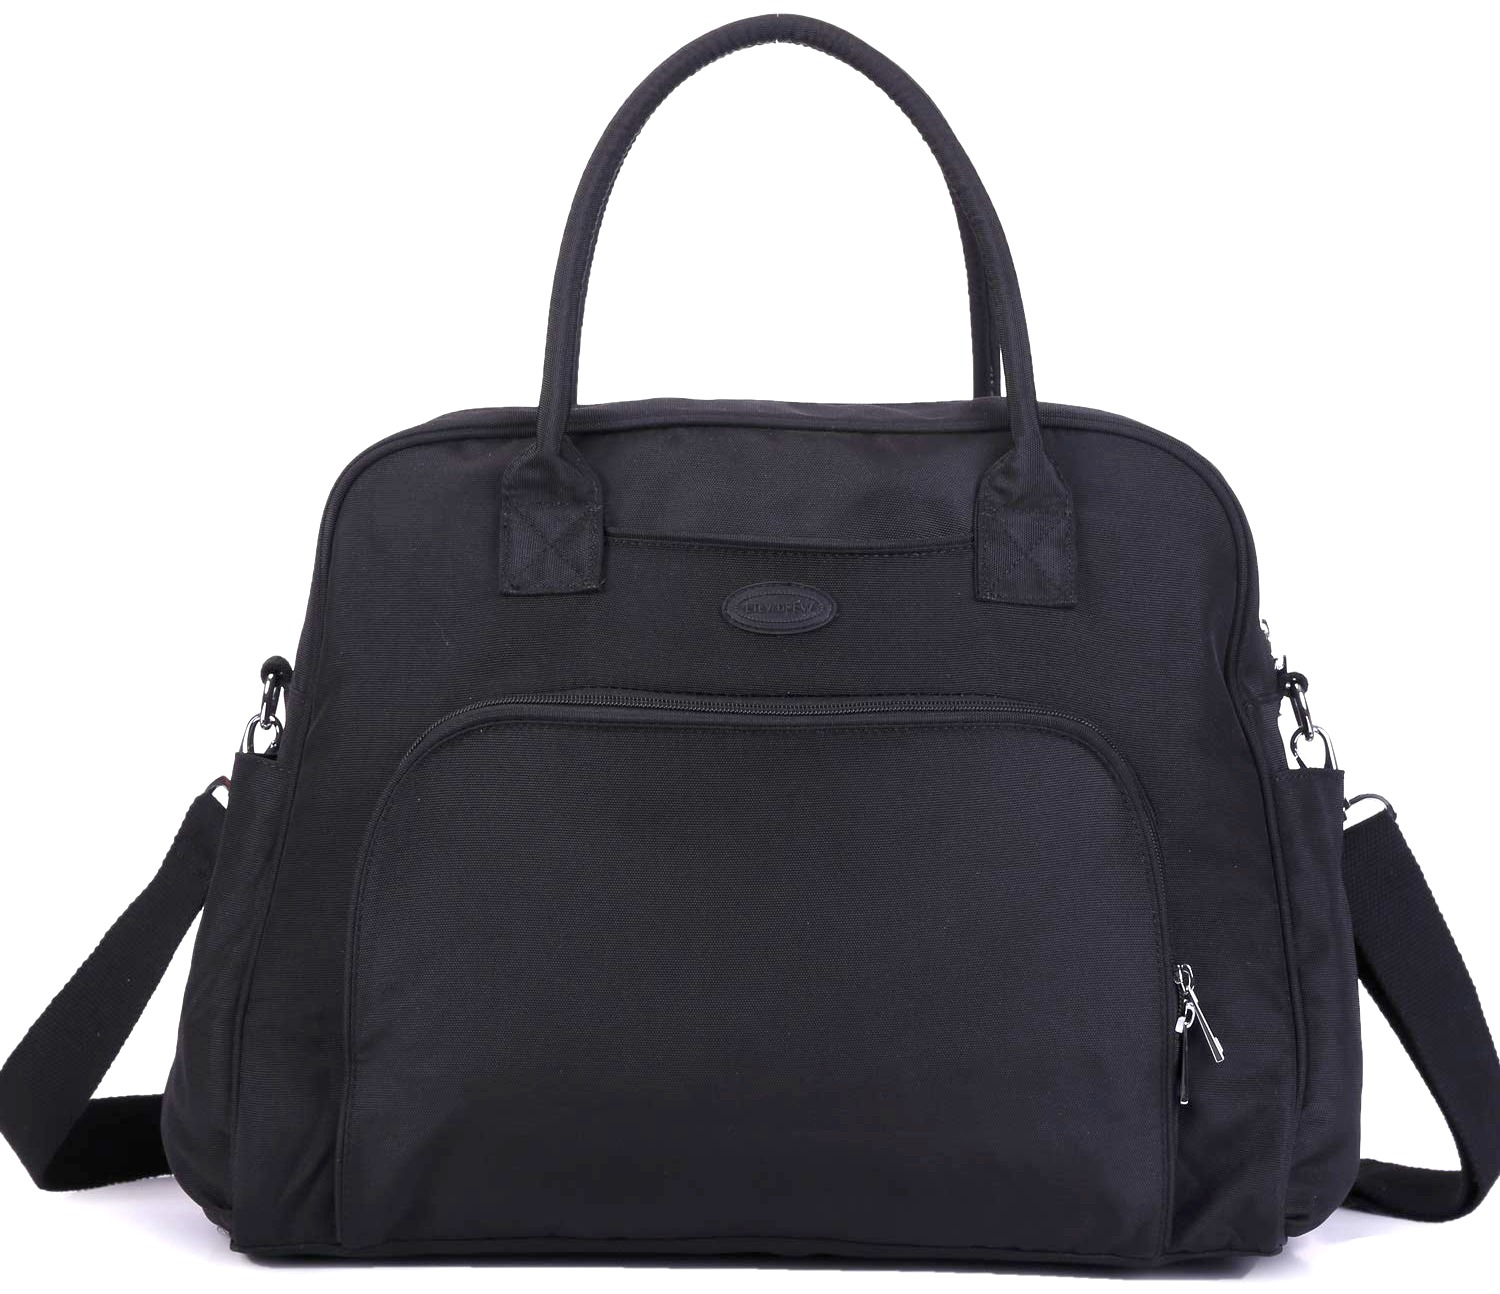 487b207658b3f5 What are the Best Travel Bags with Trolley Sleeve?